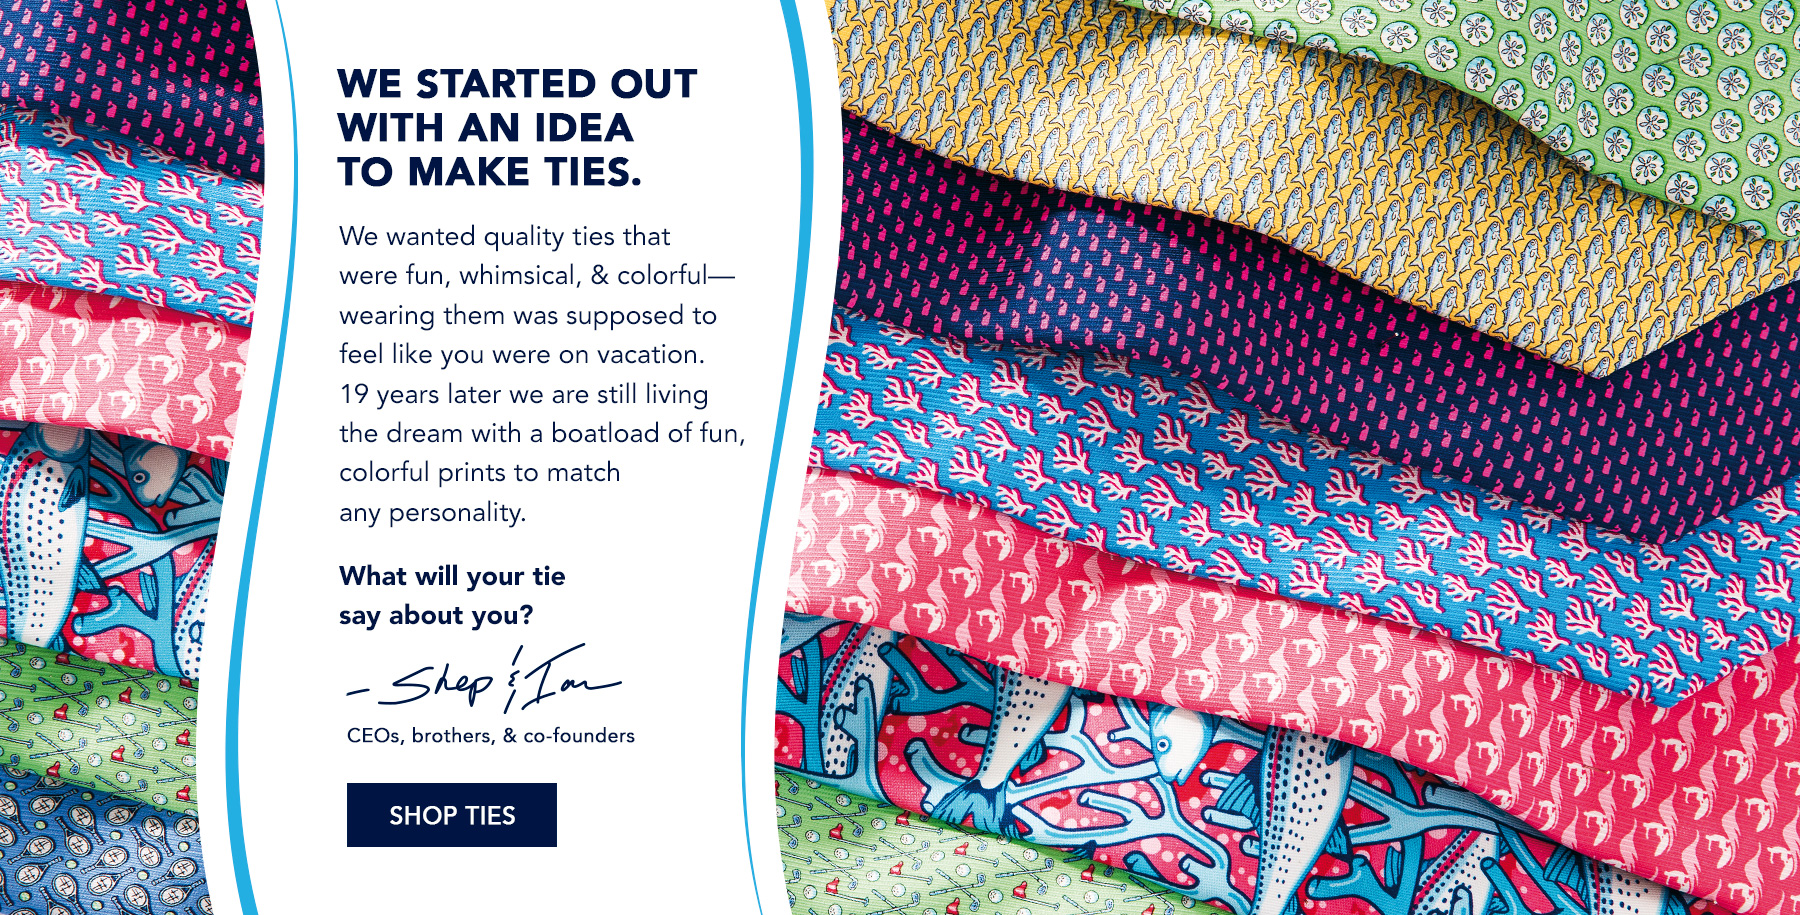 We started out with an idea to make ties. We wanted quality ties that were fun, whimsical, & colorful - wearing them was supposed to feel like you were on vacation. 19 years later we are still living the drewm with a boatload if fun, colorful prints to match any personality. What will your tie say about you? Shep & Ian, CEOs, brothers, & co-founders. Shop Ties.